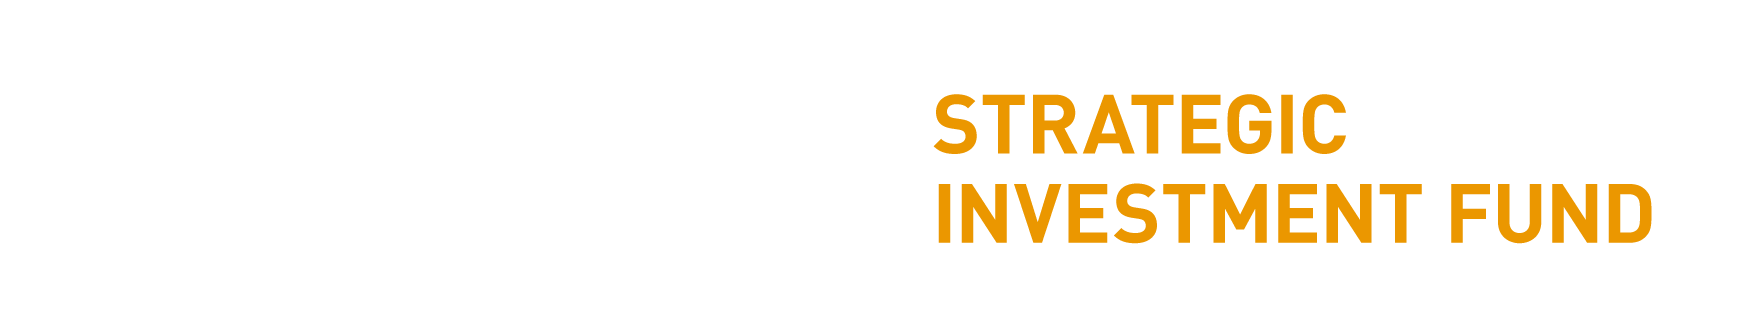 Gates Foundation Strategic Investment Fund Logo